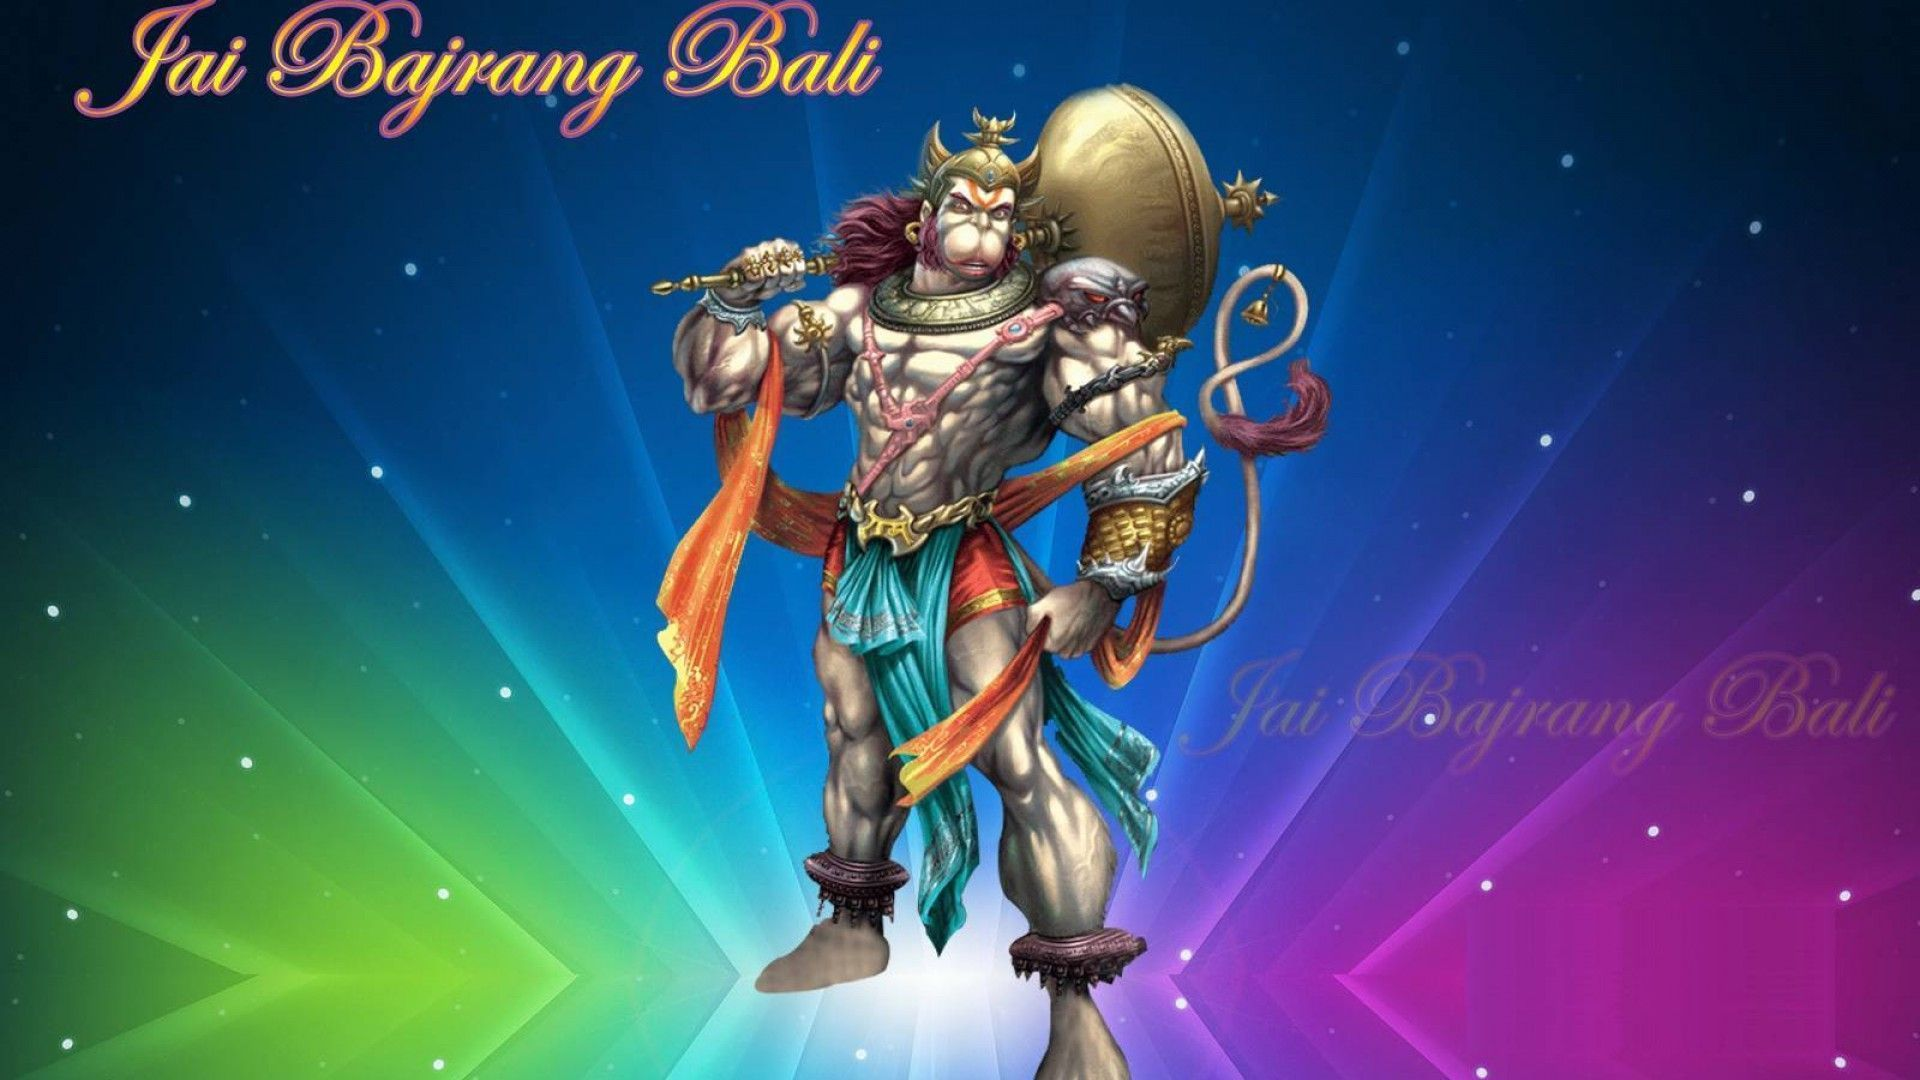 Lord Hanuman 463521 Hd Wallpaper Backgrounds Download